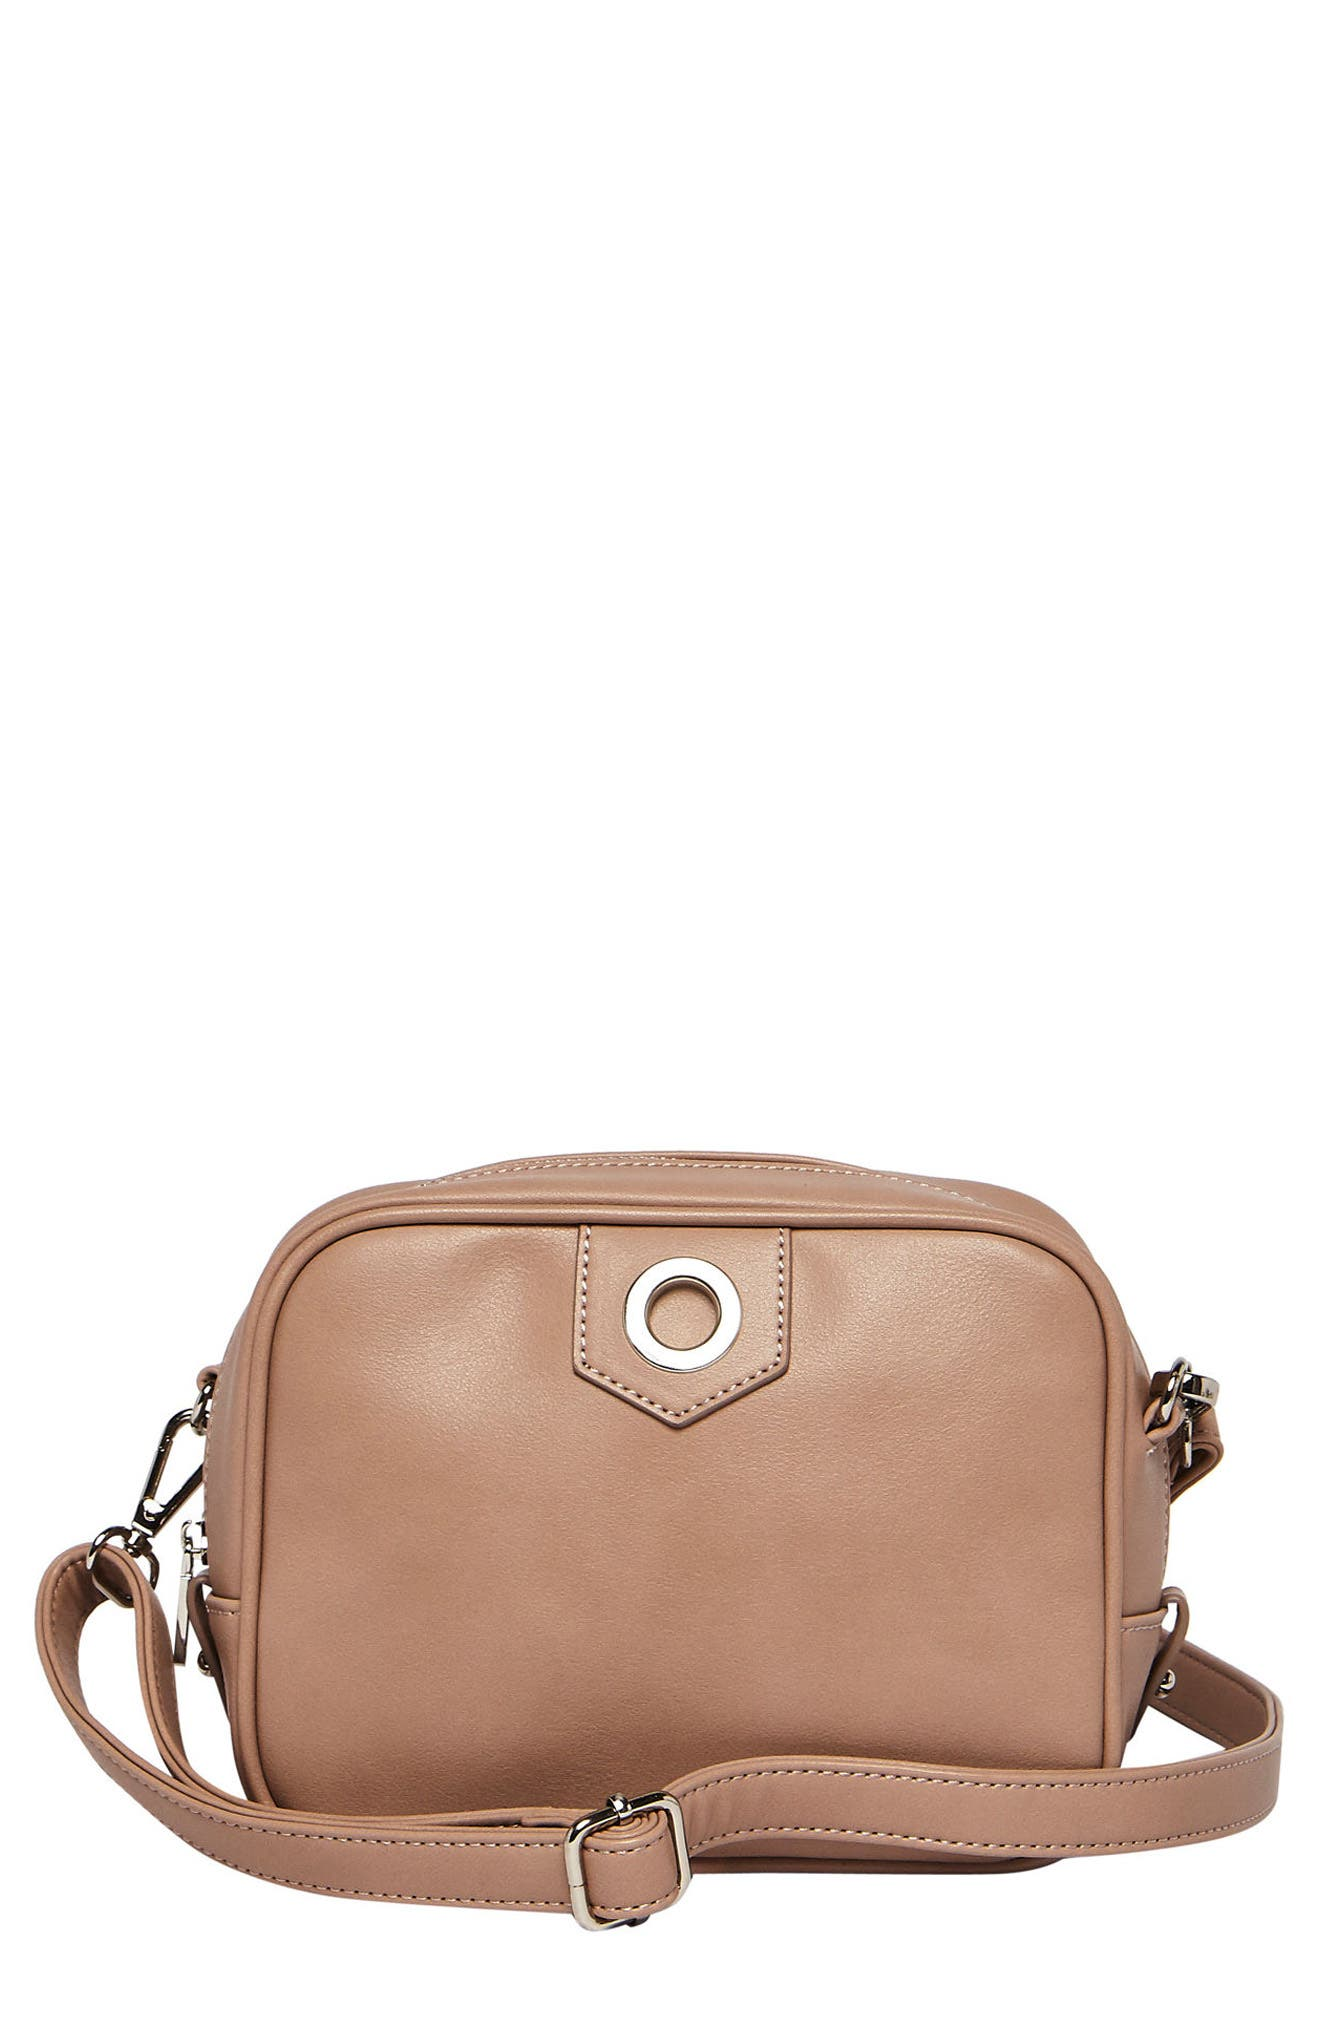 Dakota Vegan Leather Crossbody Bag,                             Main thumbnail 1, color,                             Nude